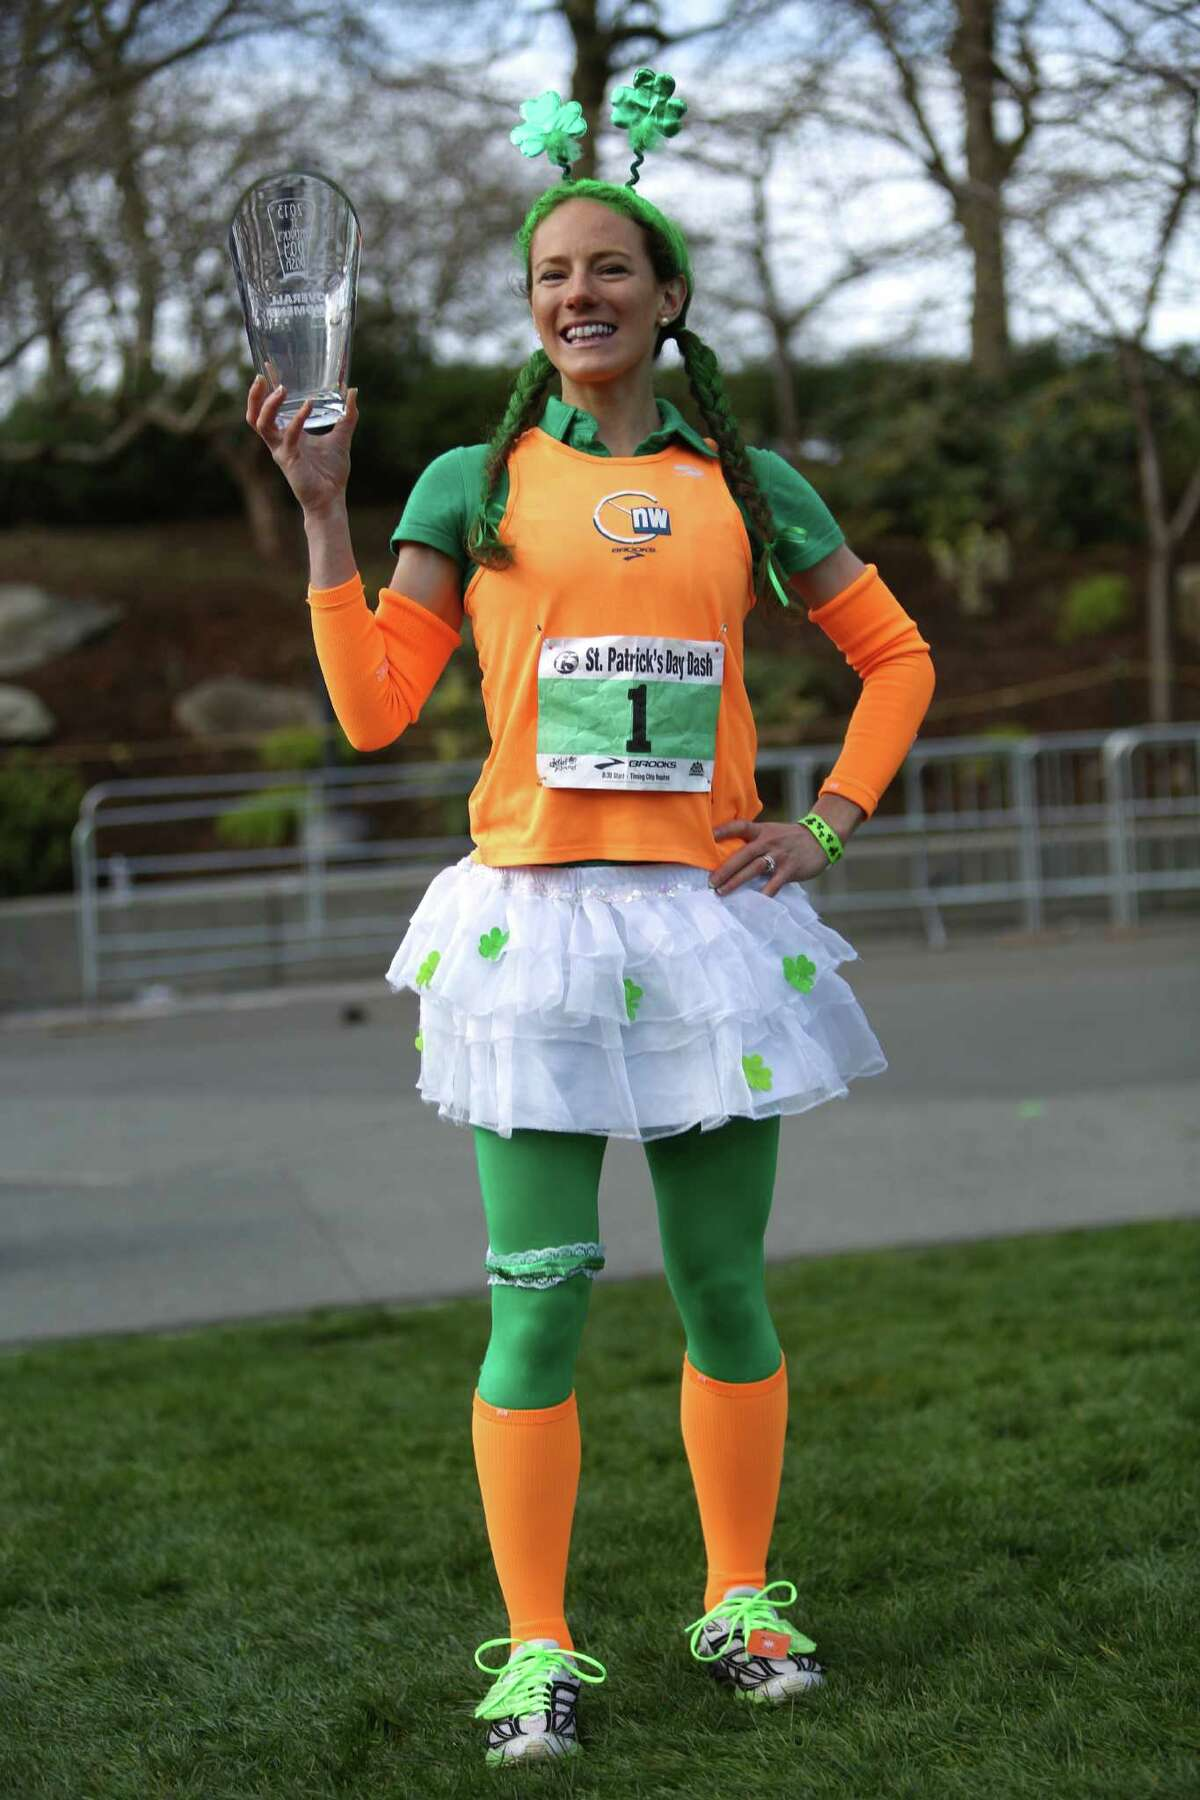 Rose Wetzel holds her first place trophy after completing the St. Patrick's Day Dash in downtown Seattle. This is Wetzel's fourth time winning the annual race. Thousands of green-clad people participated in the annual race and beer fest at Seattle Center.